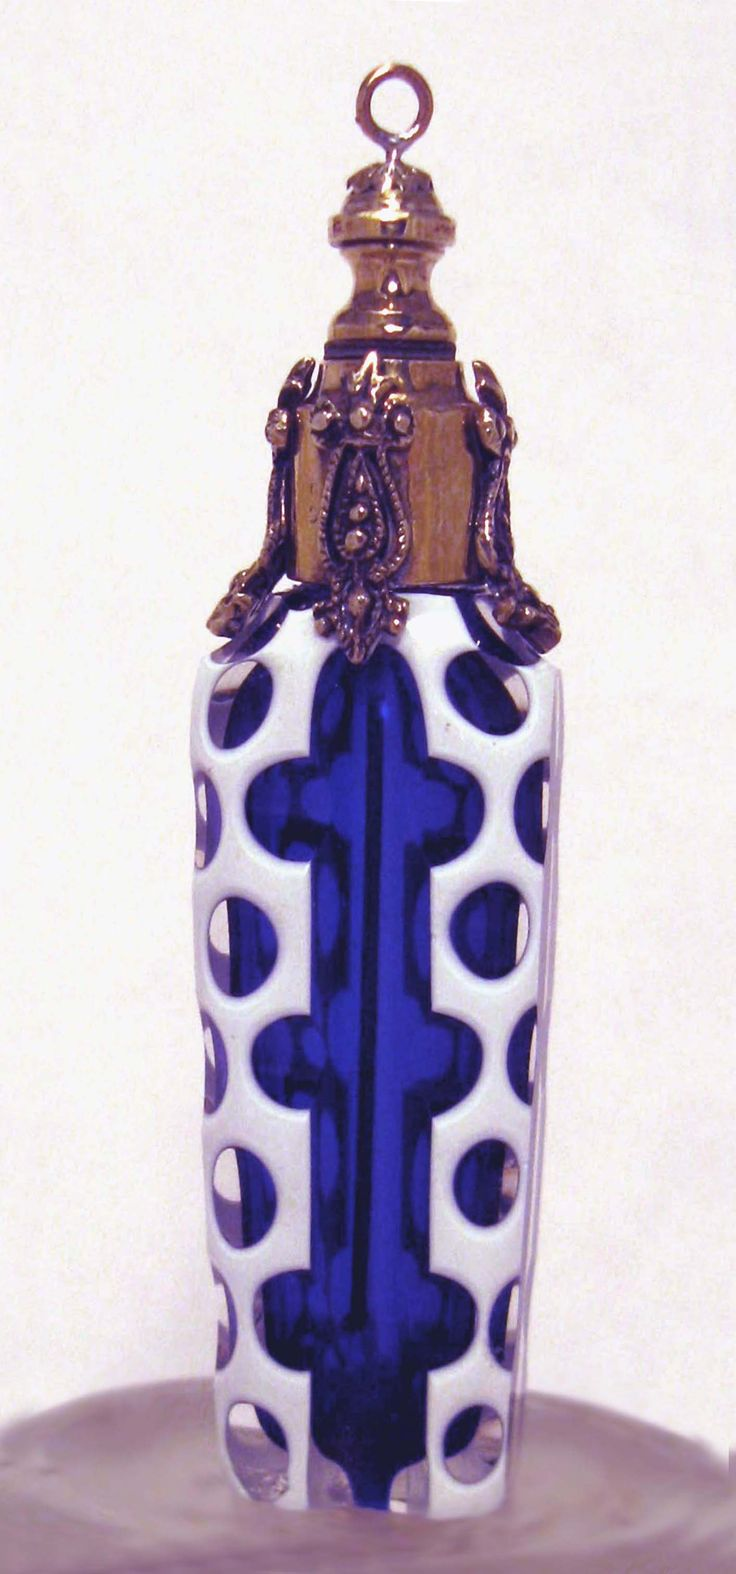 "Antique Perfume Bottle ~ Sweetest little (2 1/2"" high) French Chatelaine in unusual Polka Dot. Cased with a glass tipped dauber that matches the blue."